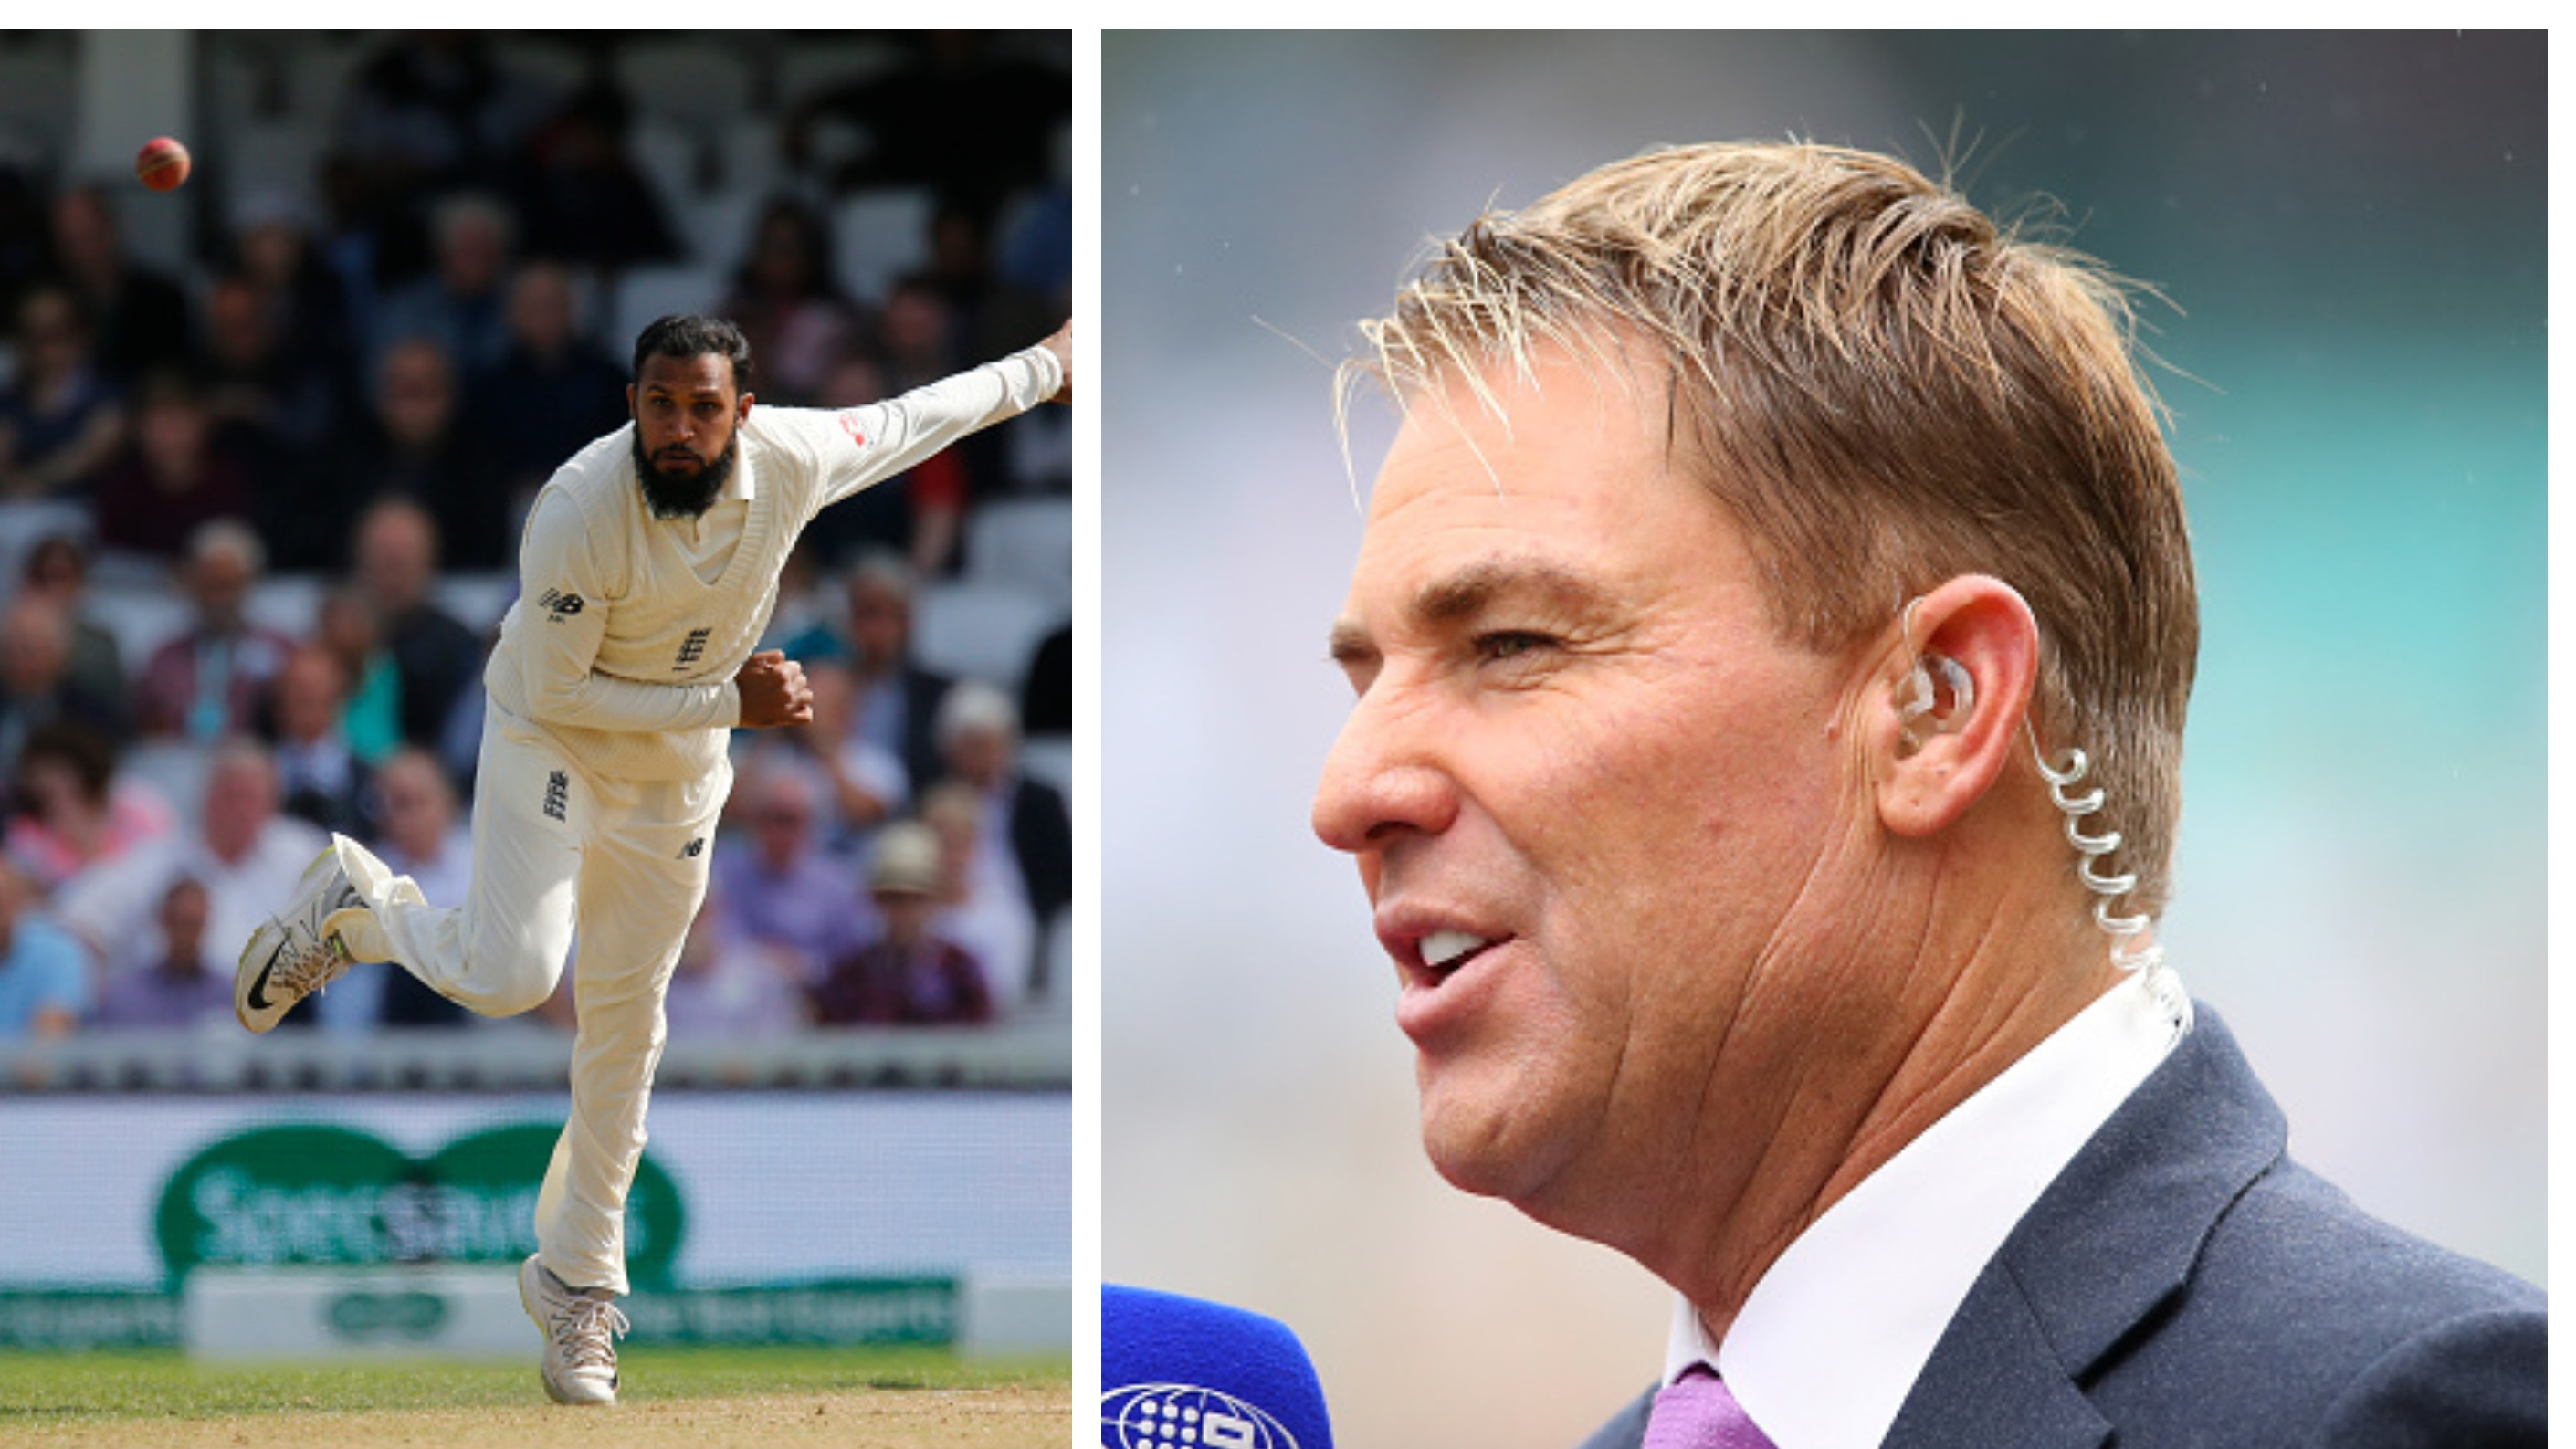 Shane Warne suggests England to provide backing and support to Adil Rashid